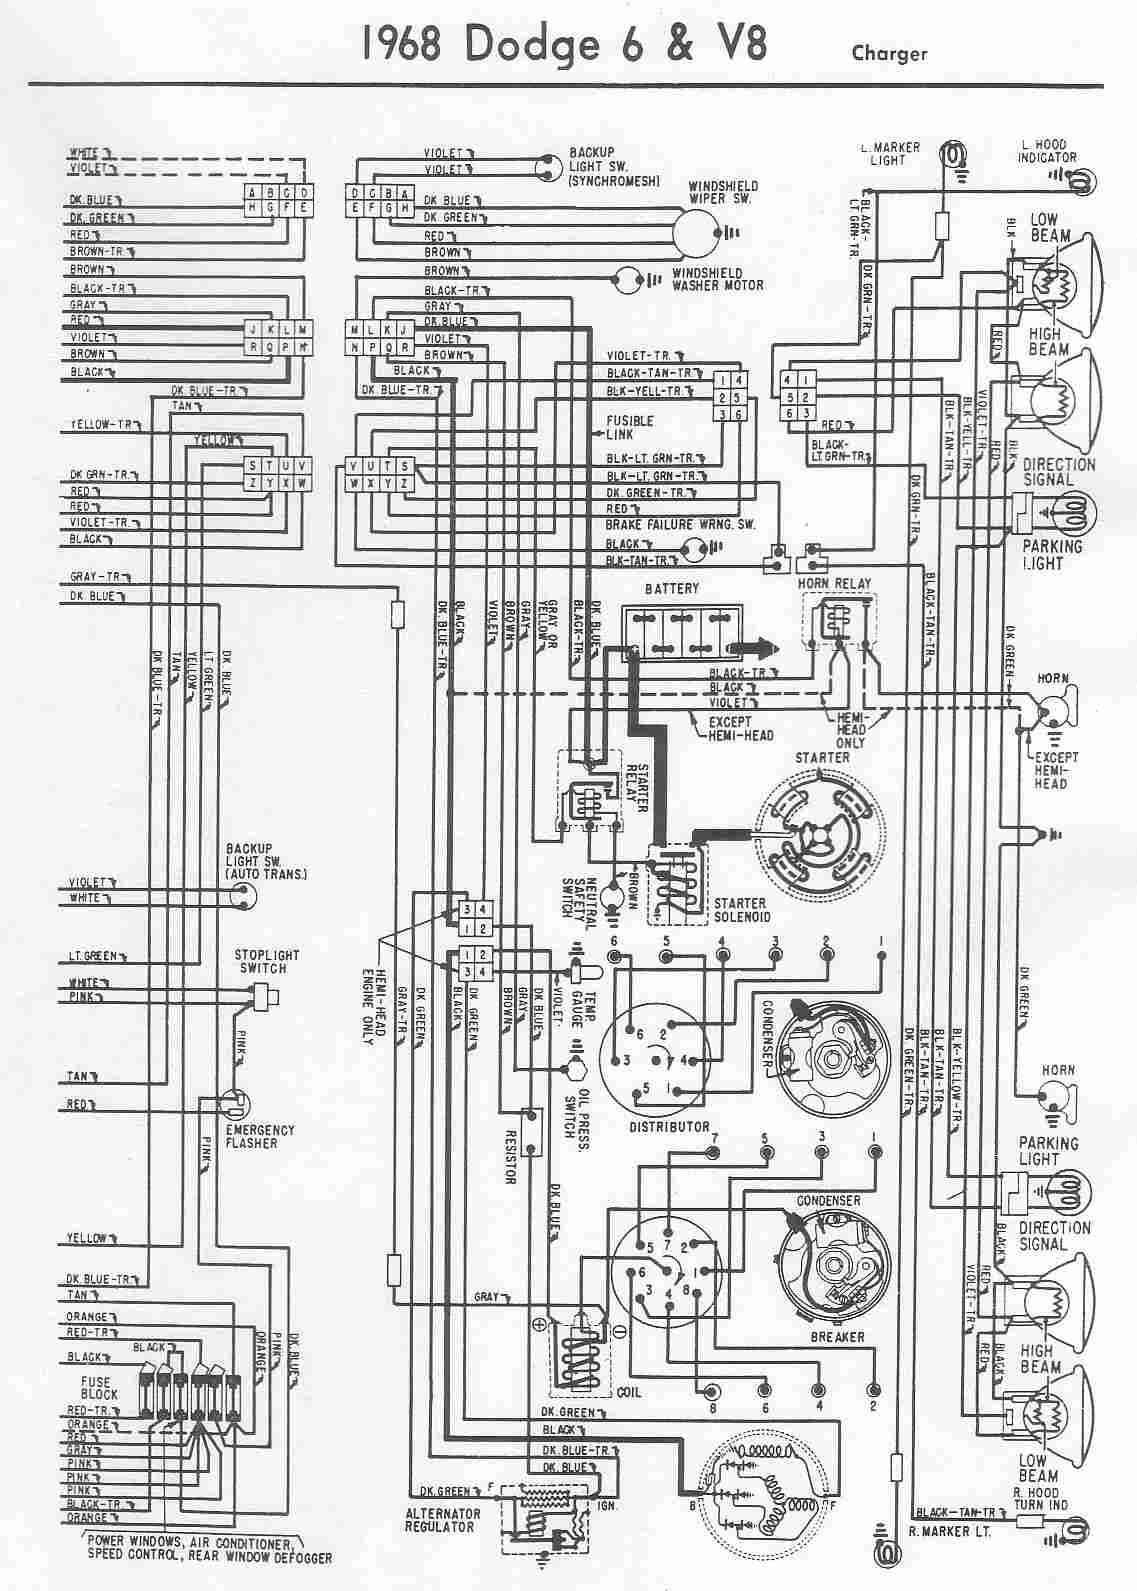 Dodge Car Manuals Wiring Diagrams Pdf Fault Codes Power Wagon Diagram Download